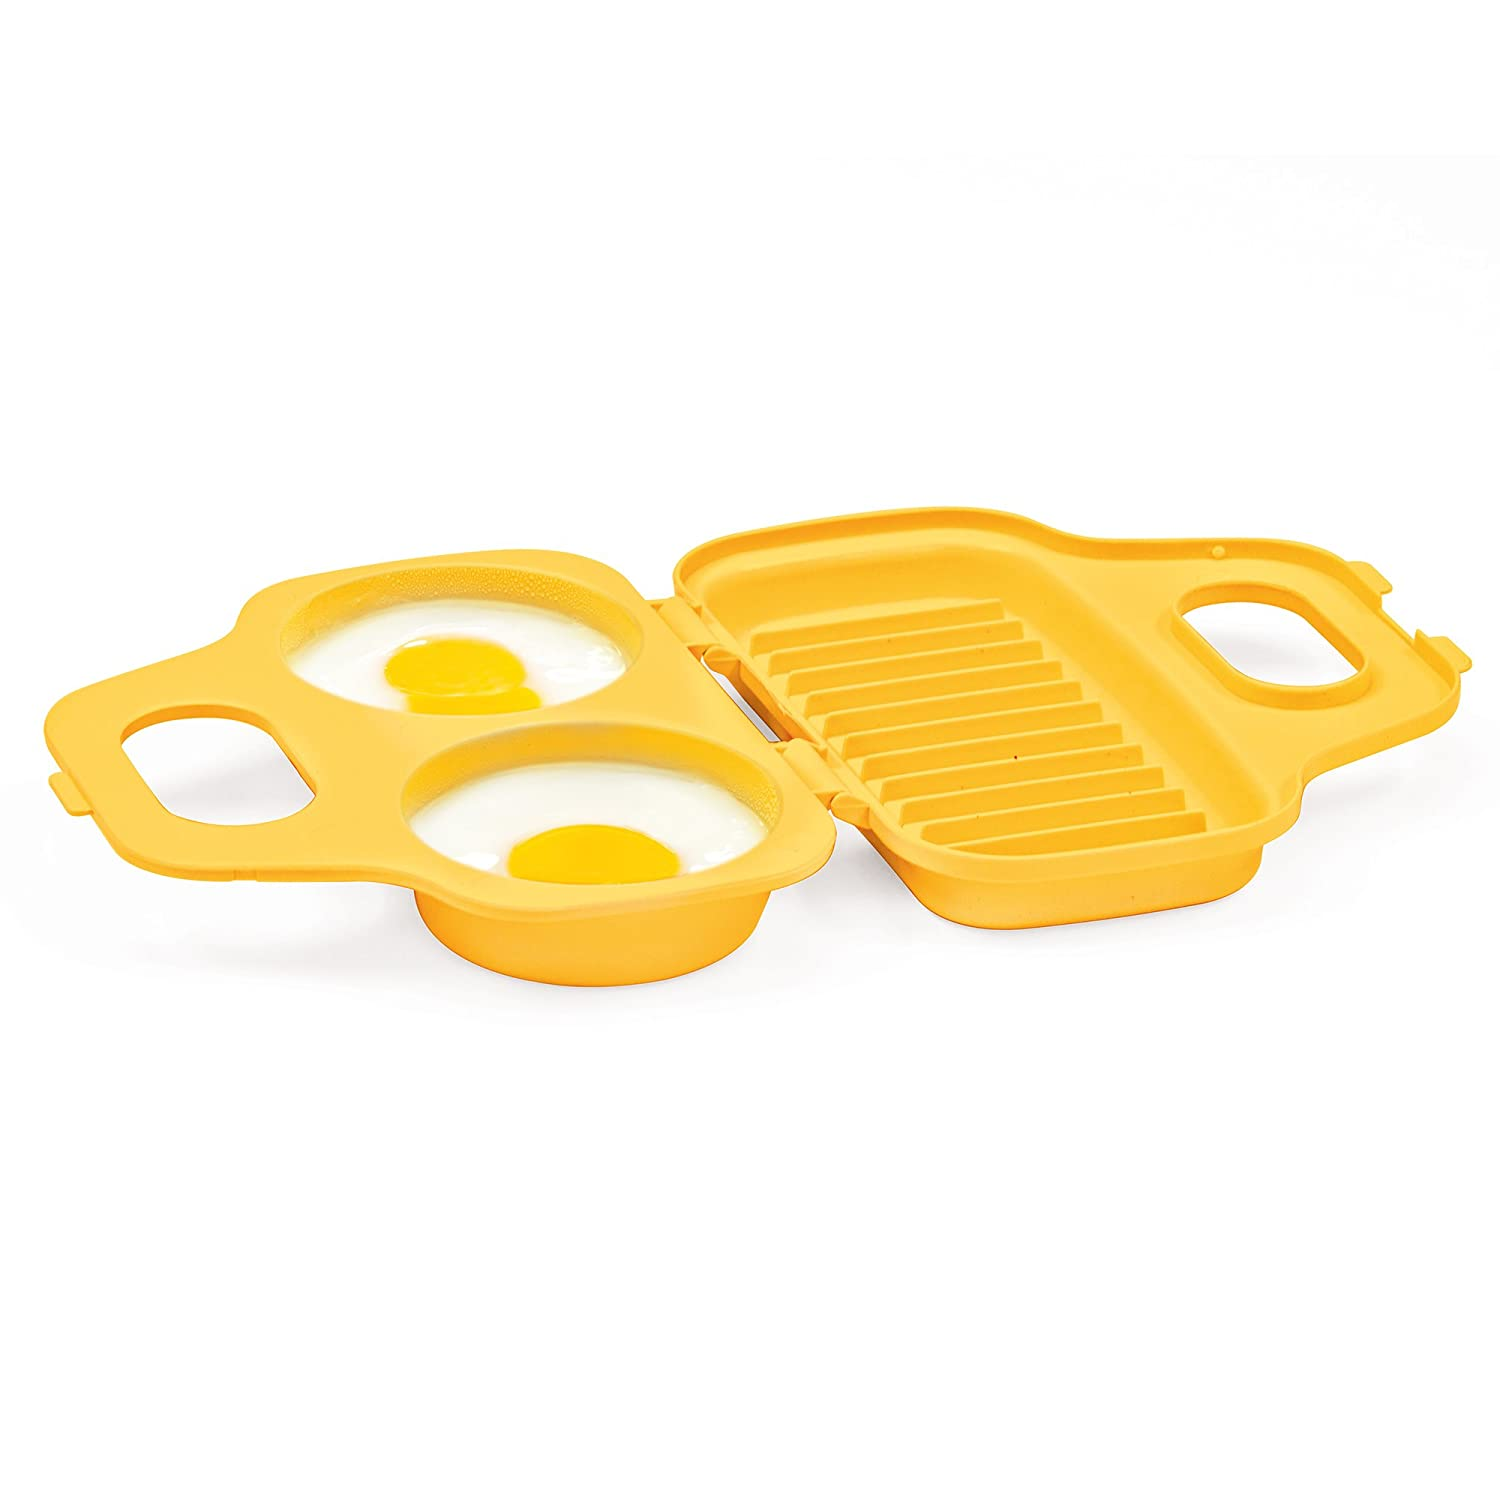 Yellow PS-77Y Easy-To-Use Dishwasher Safe Low-Calorie Breakfasts Prep Solutions by Progressive Microwave 4 Egg Poacher Lunches And Dinner